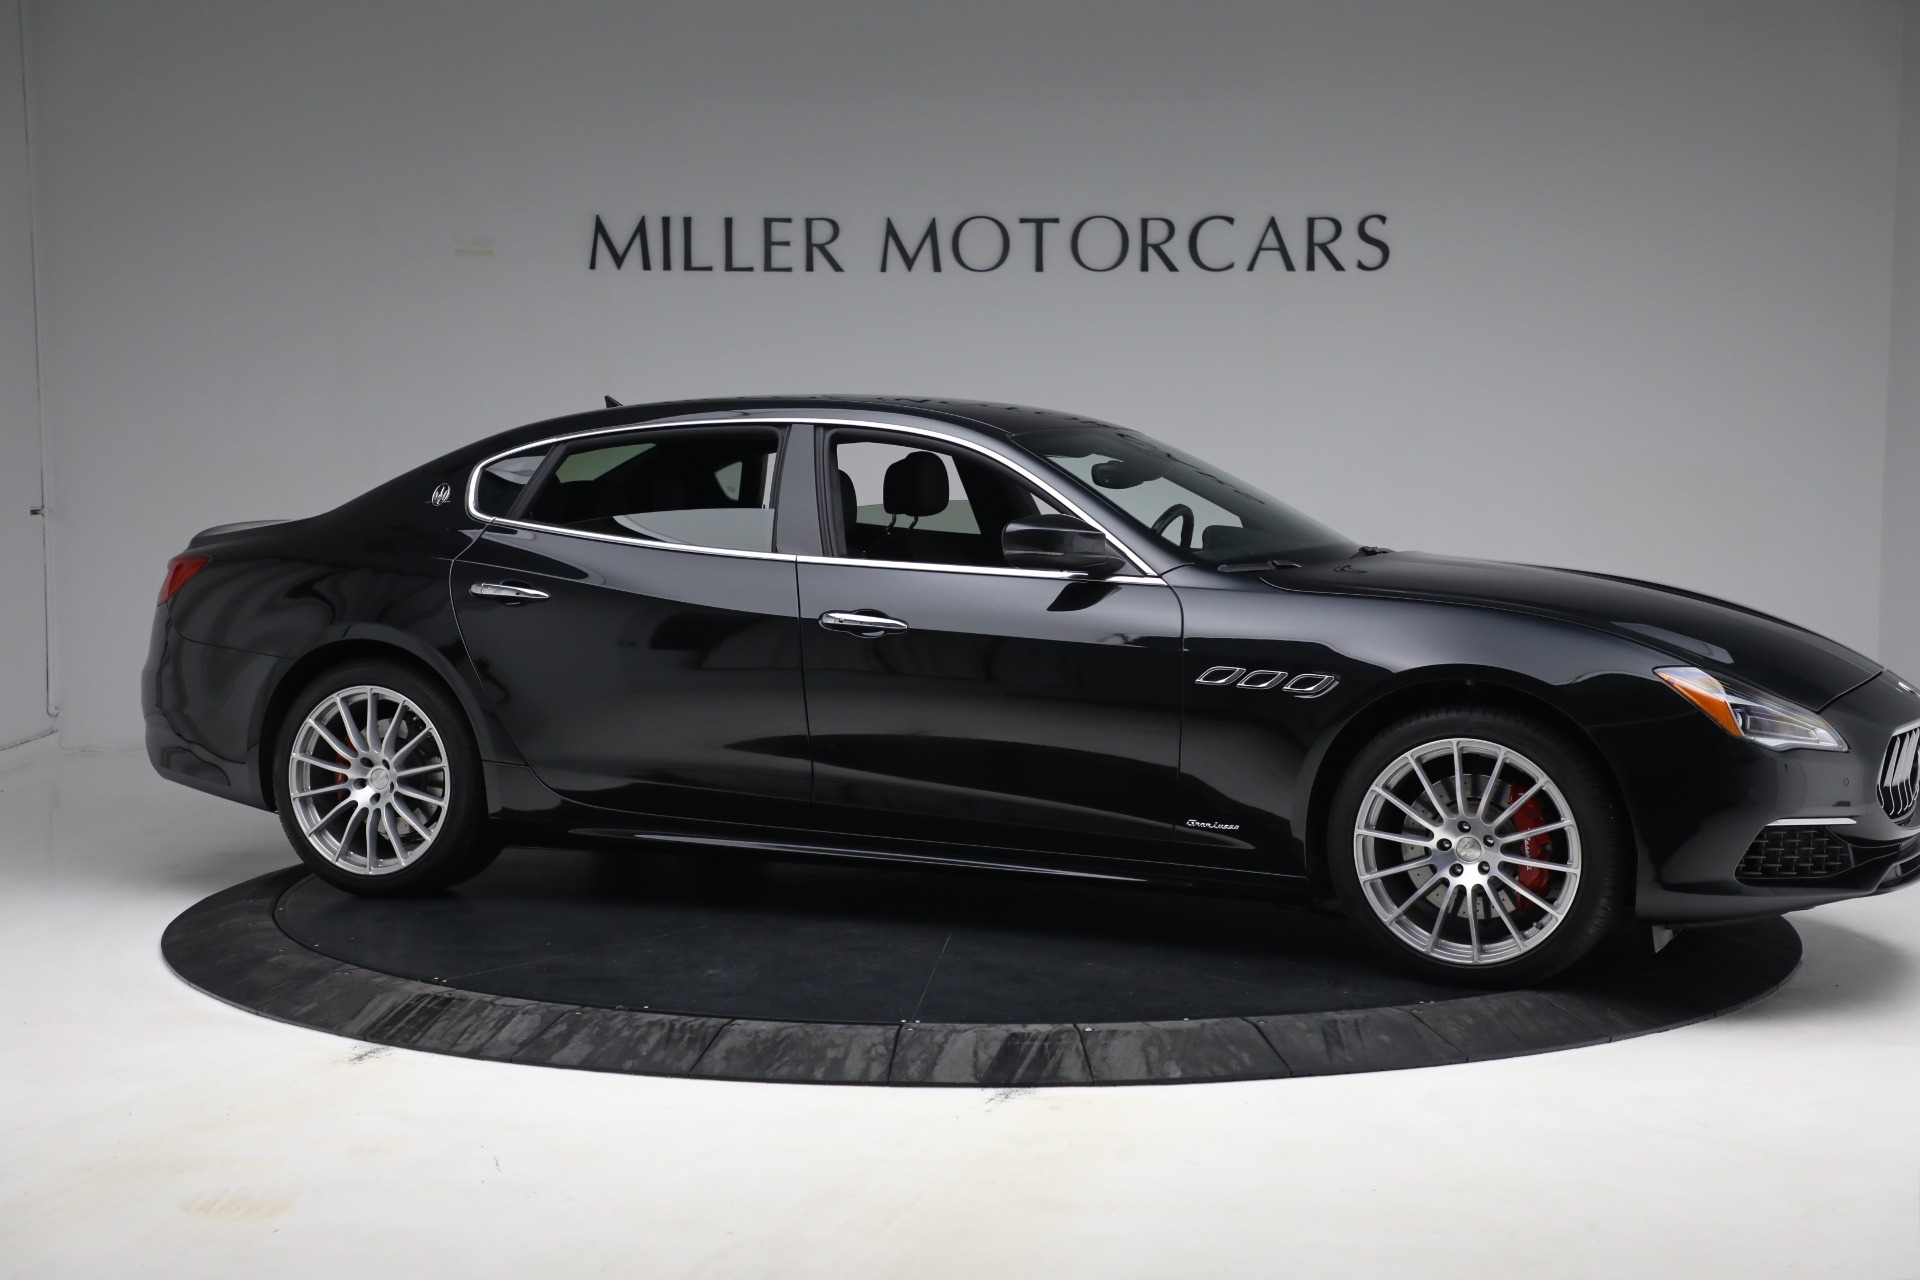 New 2019 Maserati Quattroporte S Q4 GranLusso For Sale In Greenwich, CT 2619_p10